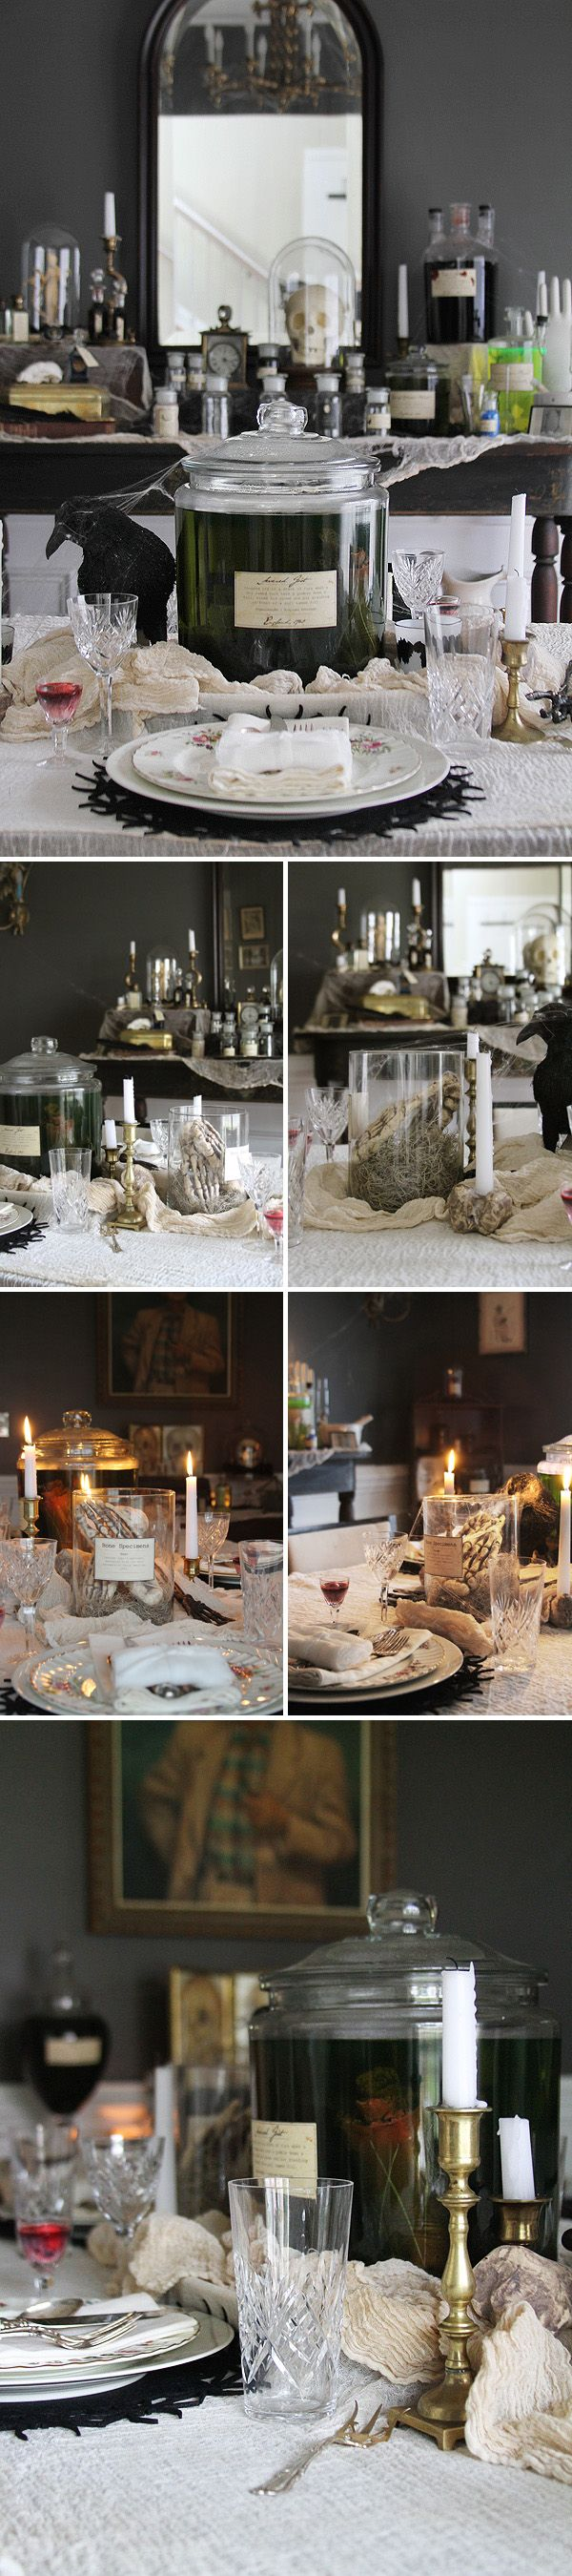 13 Spooky Halloween Table Settings